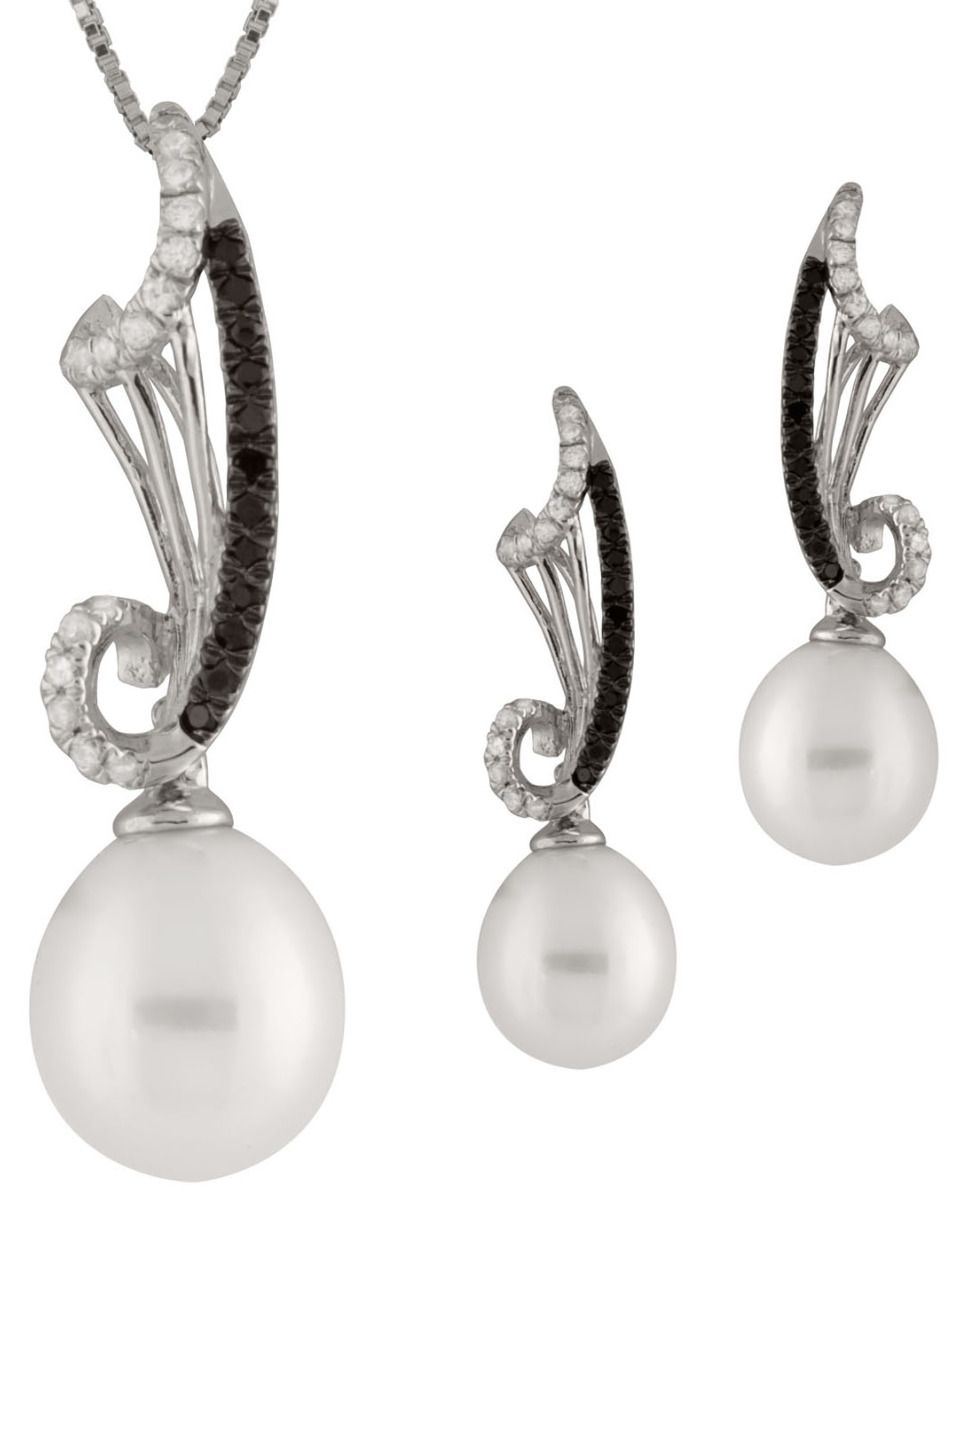 6148330c Priceless Pearls - 9-10mm Freshwater Pearl & Zirconia Set In White ...